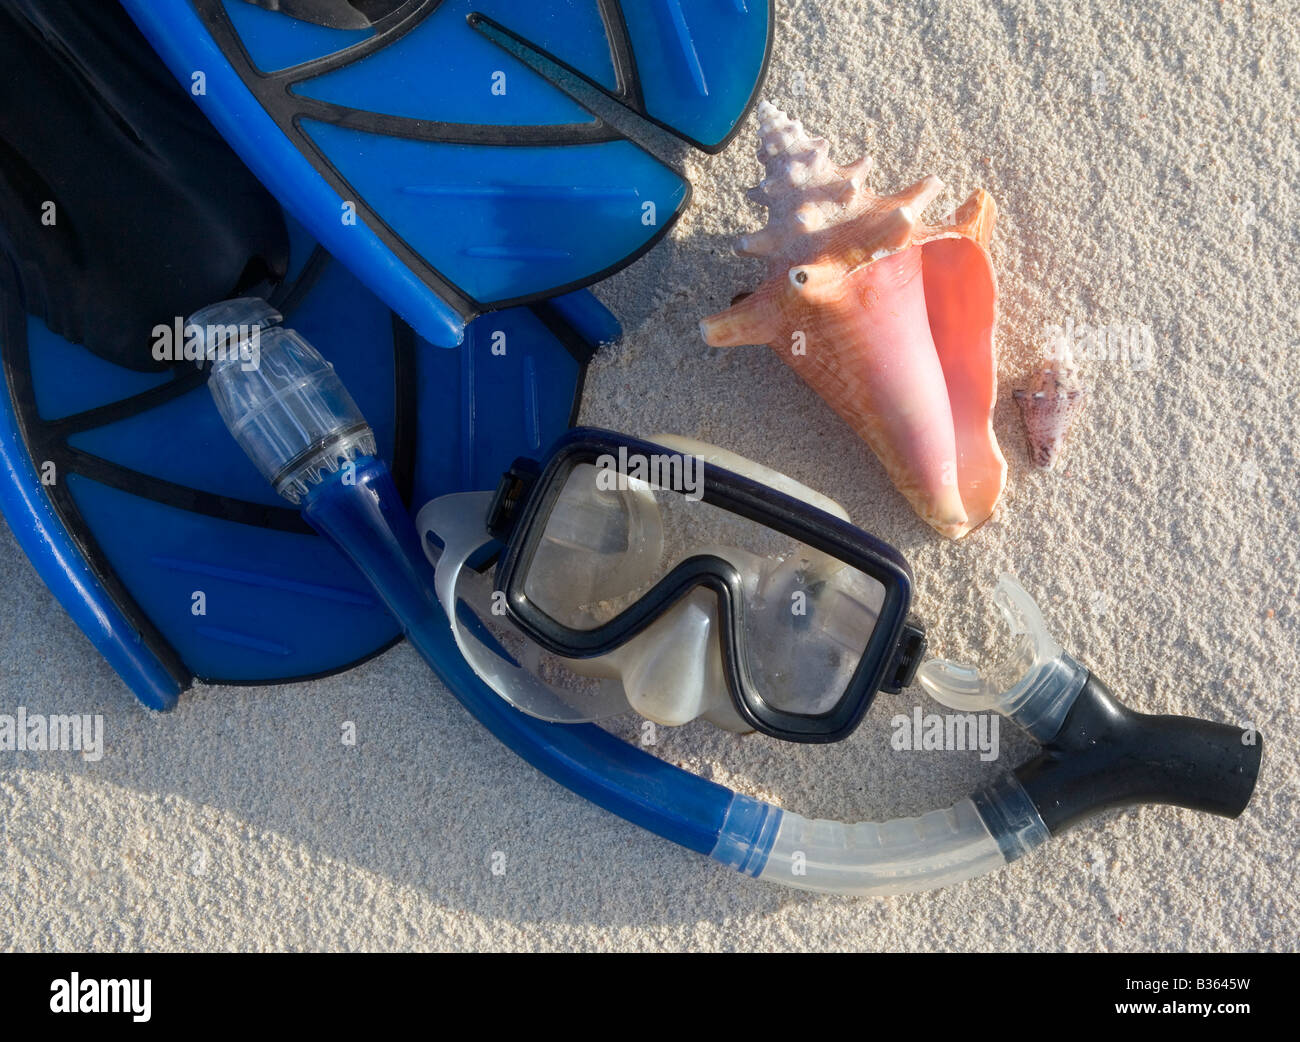 Snorkeling gear and shells on a Caribbean beach. - Stock Image